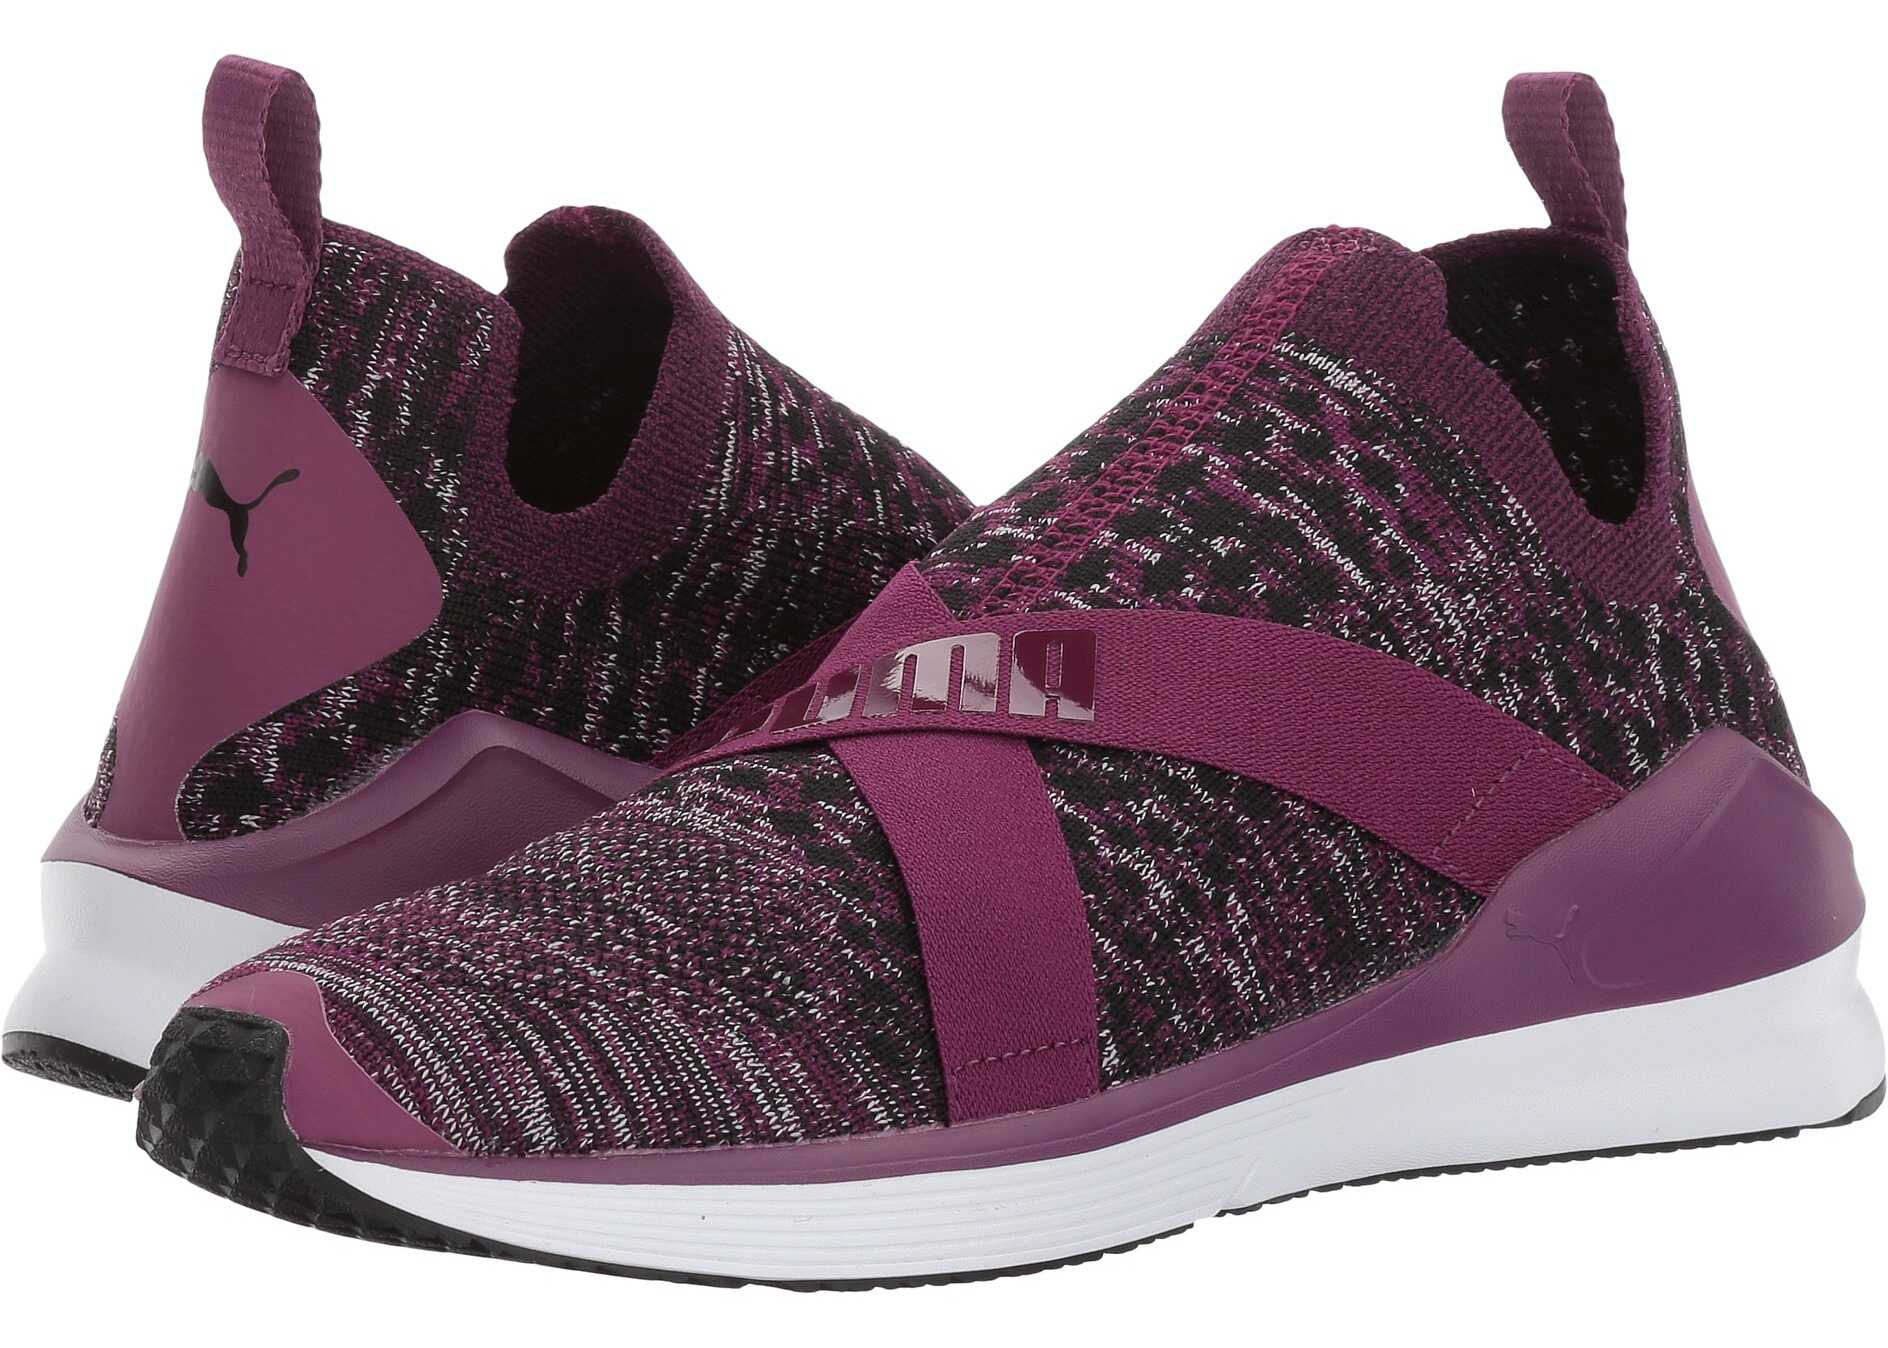 PUMA Fierce Evoknit Dark Purple/Puma White